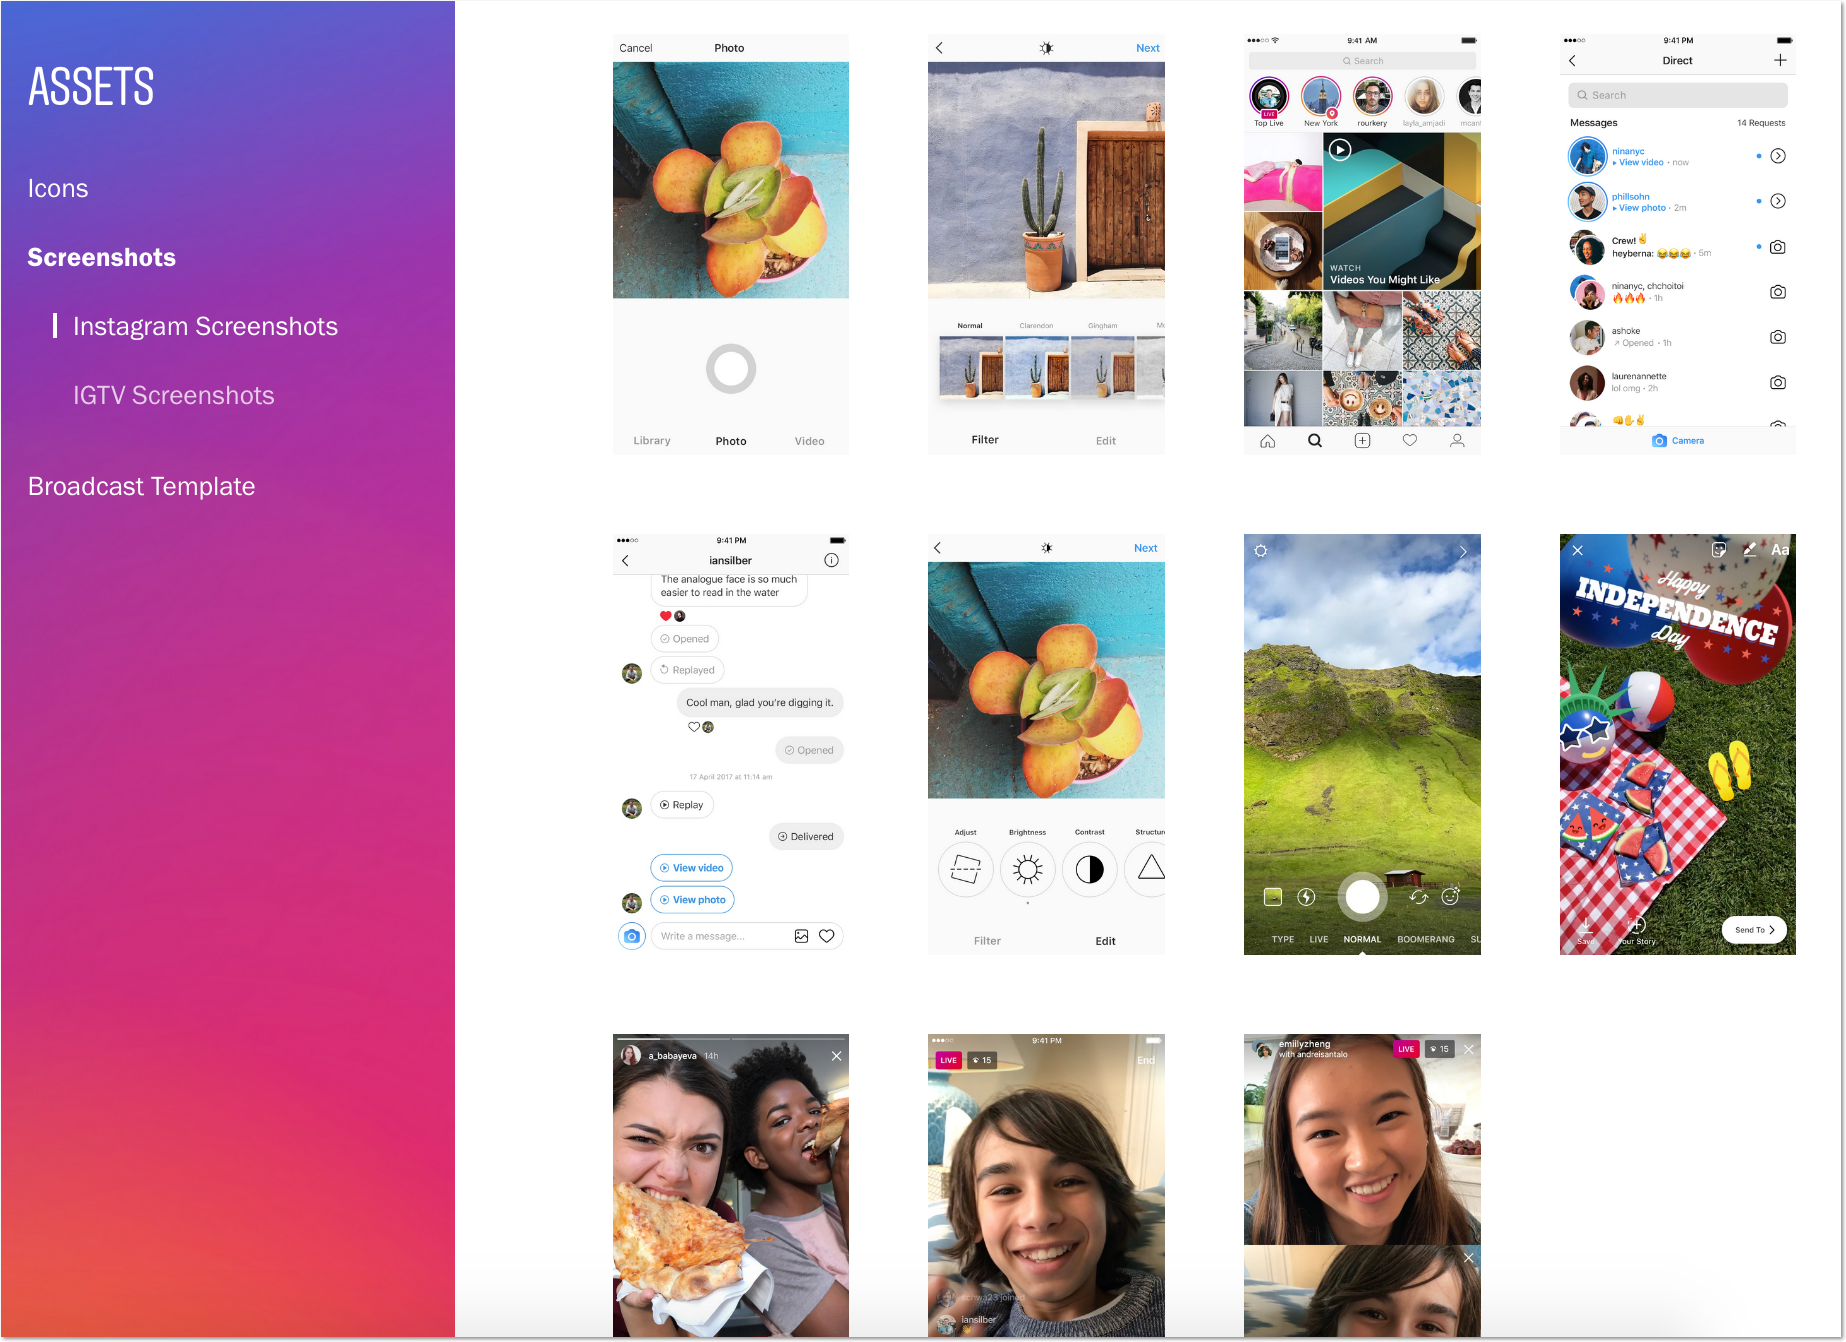 Style Guide/Assets example for a press page from instagram